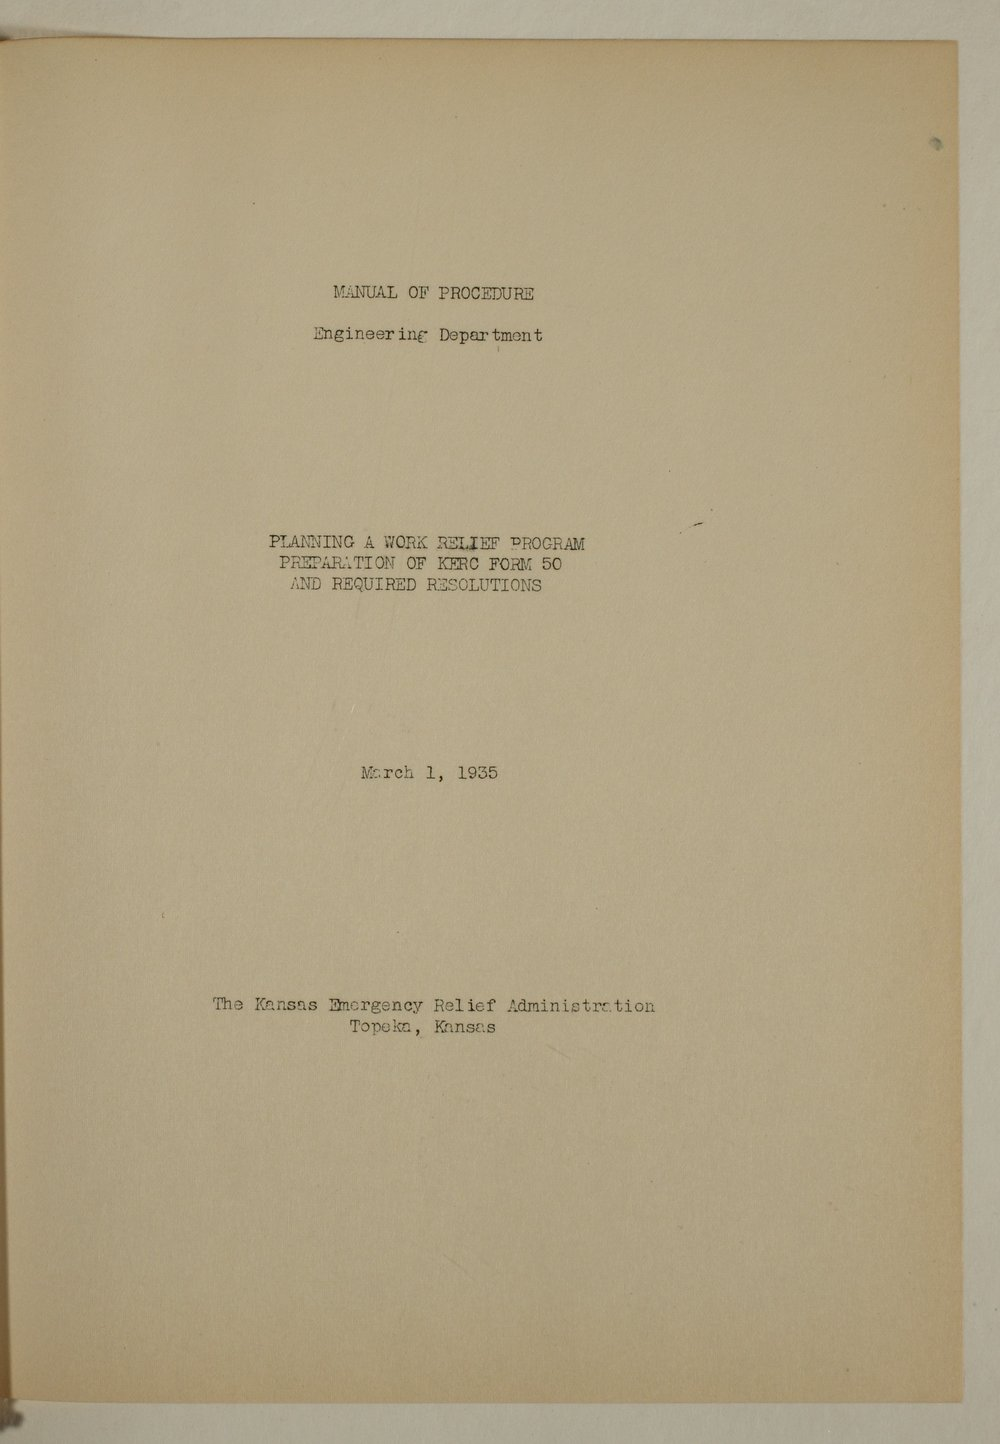 Manual of procedure, engineering department - Title Page, Section 1